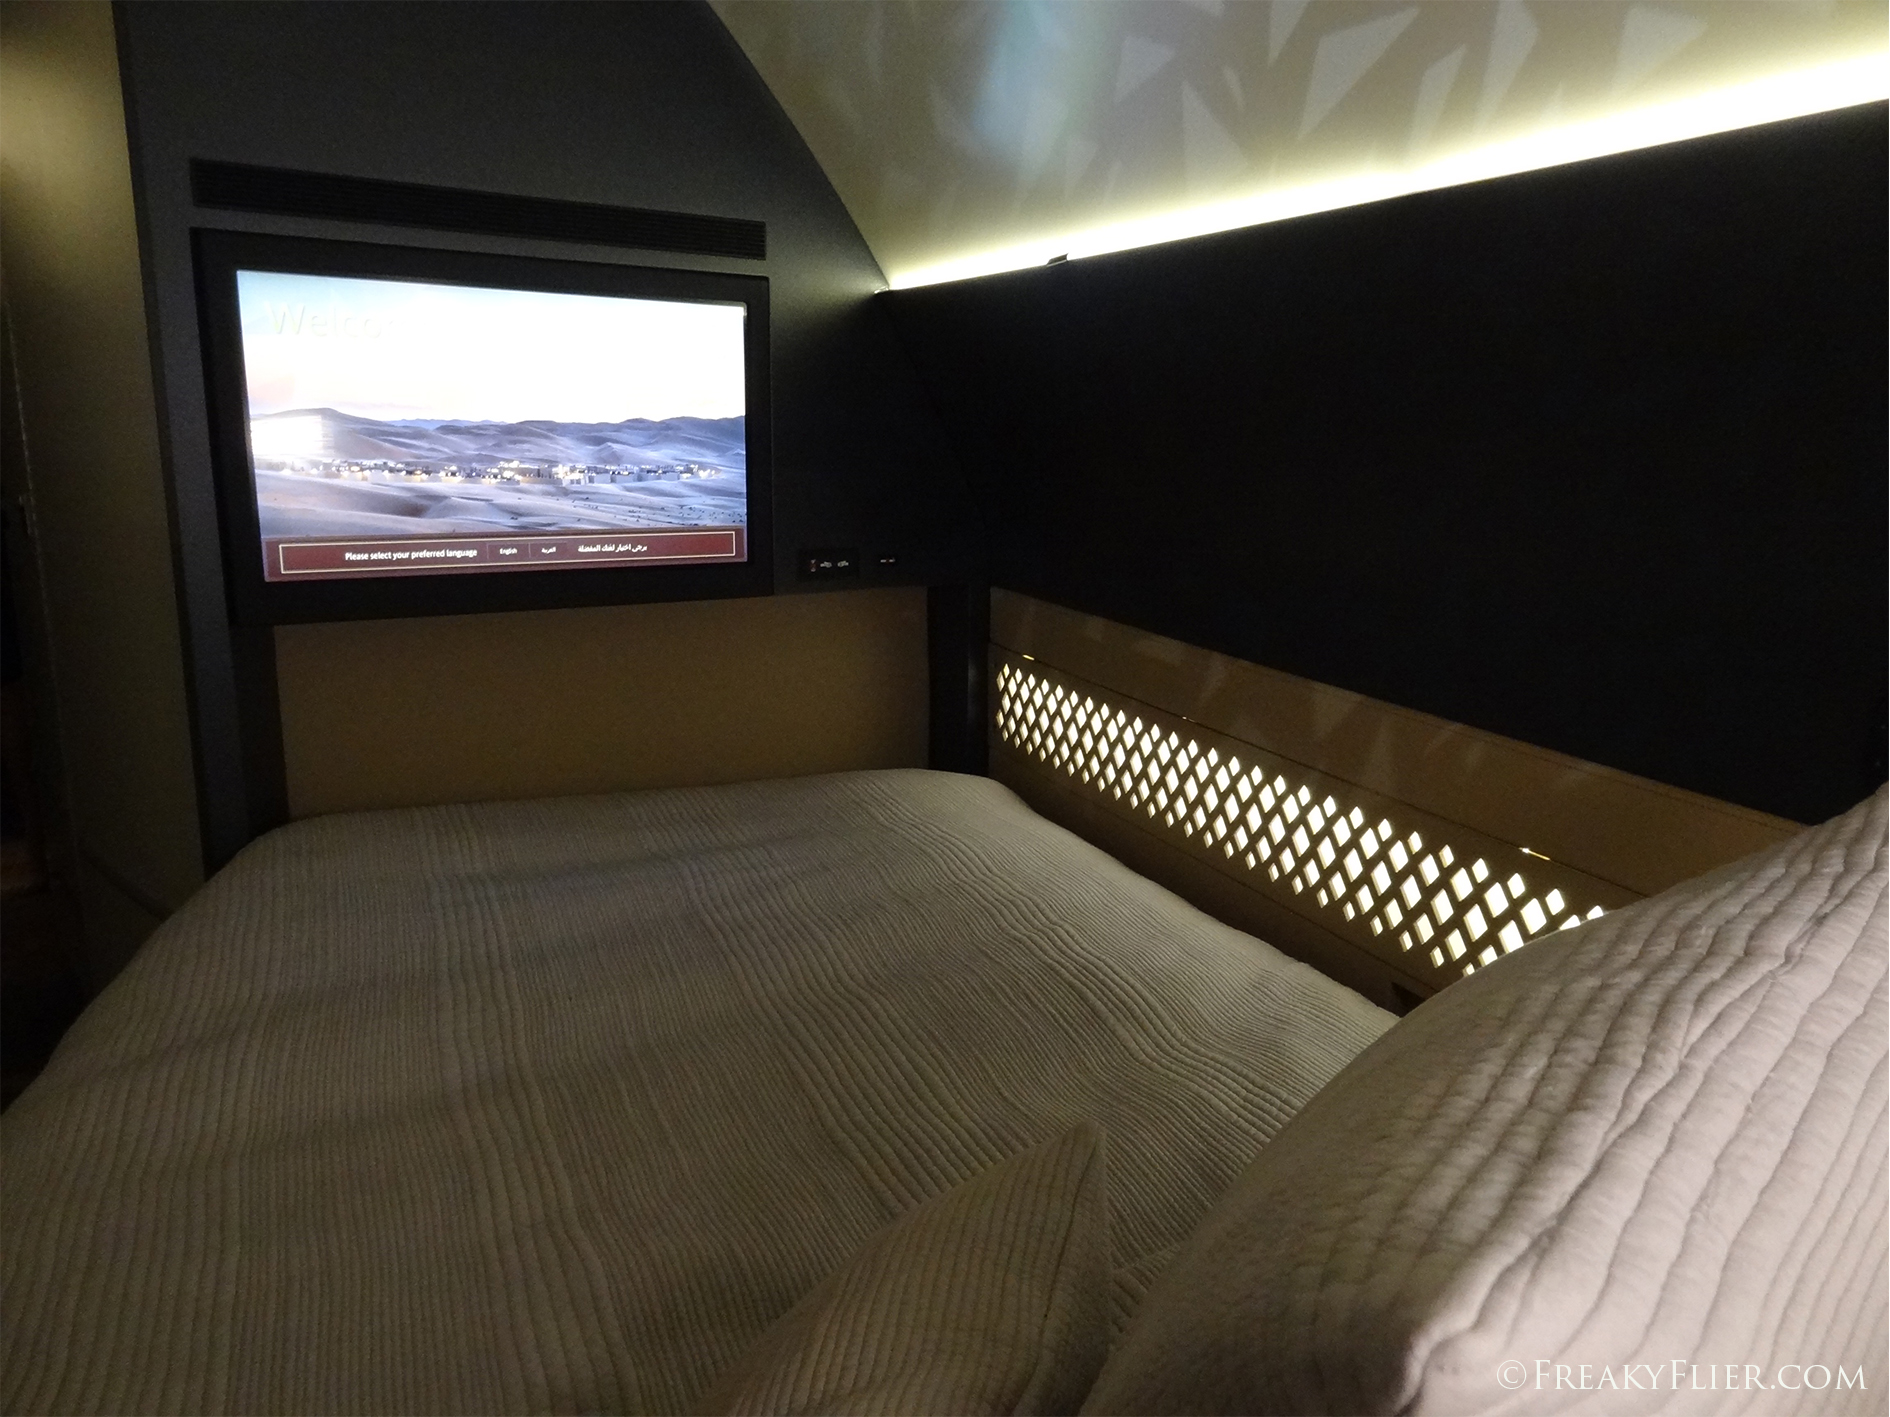 32 inch flat screen TV from the bed in The Residence